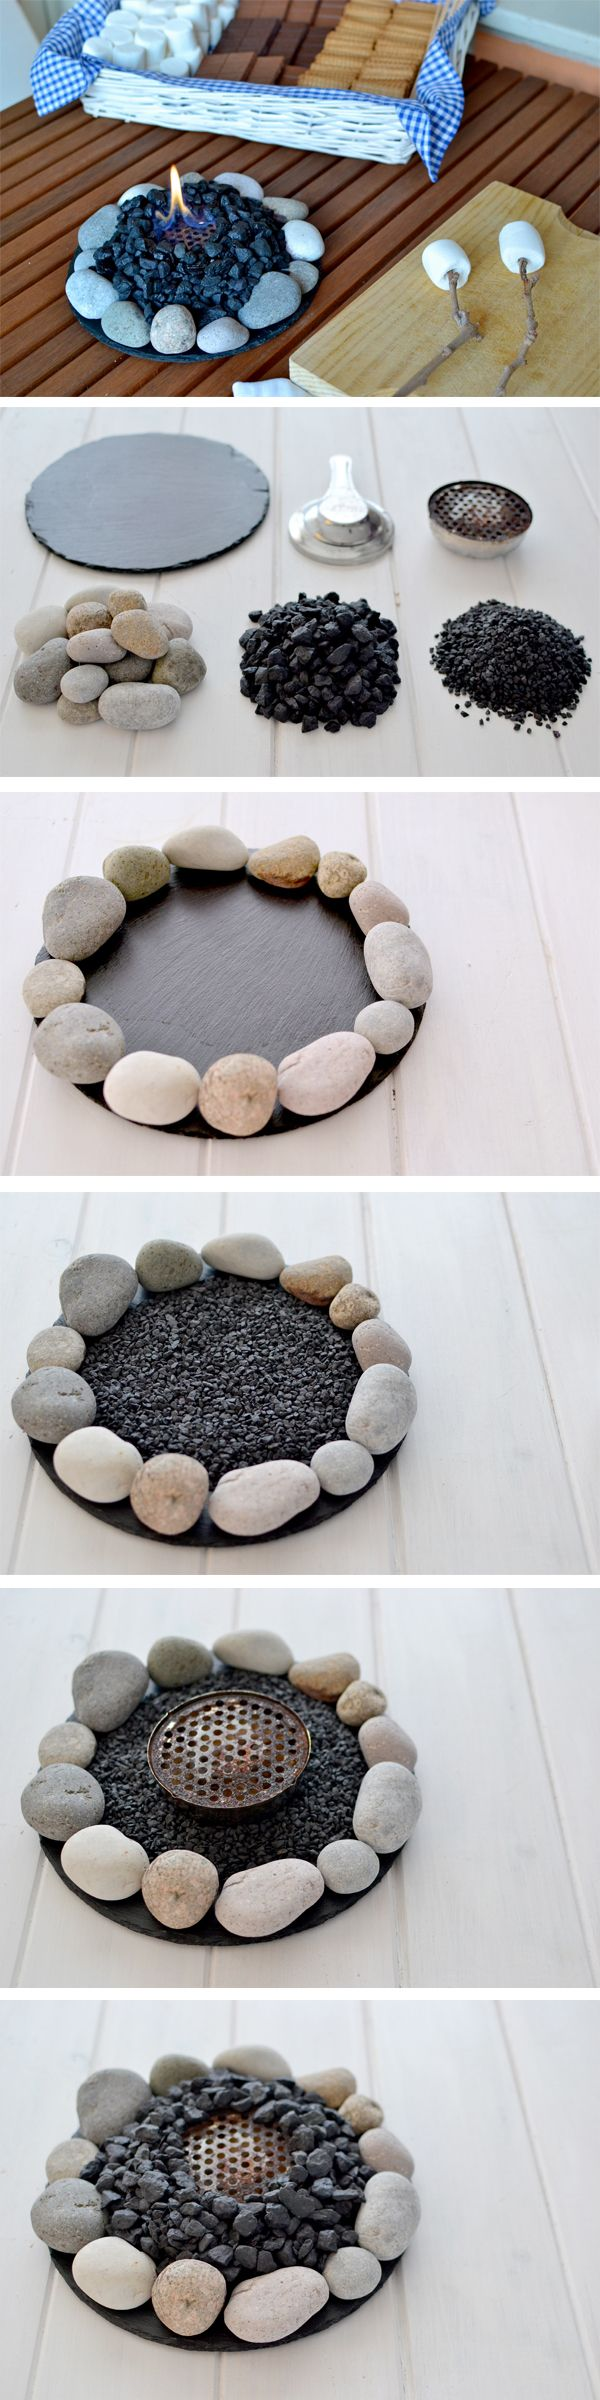 Make a Small Fire at Home.